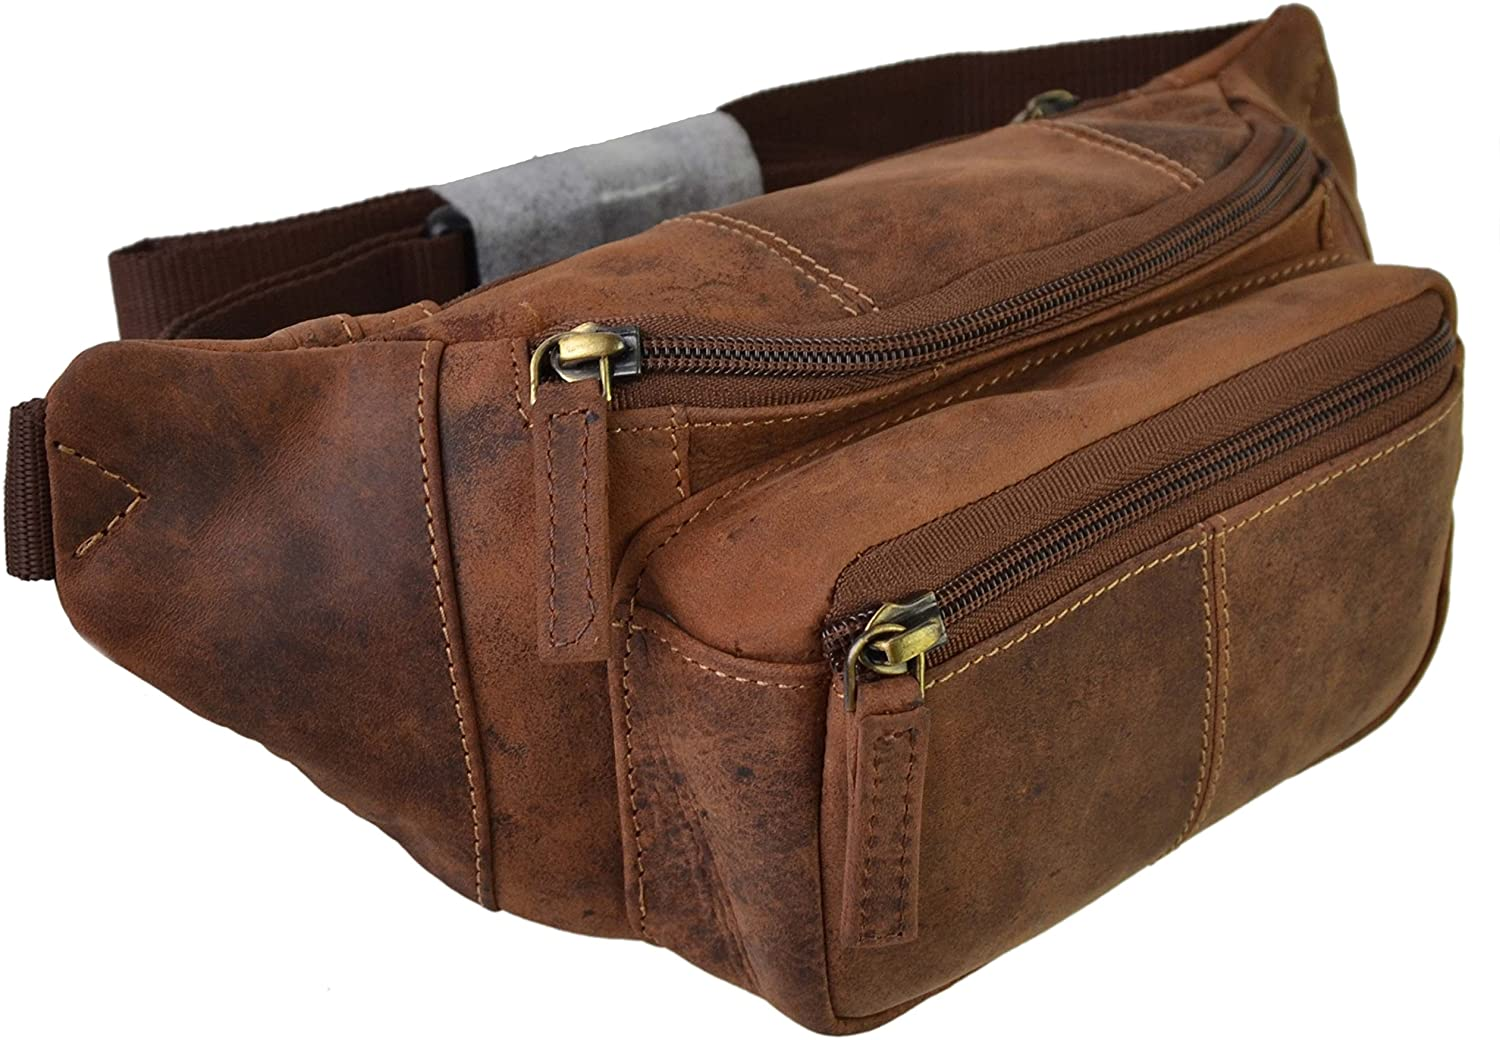 Visconti Leather Unisex Fanny Pack - Oil Tan